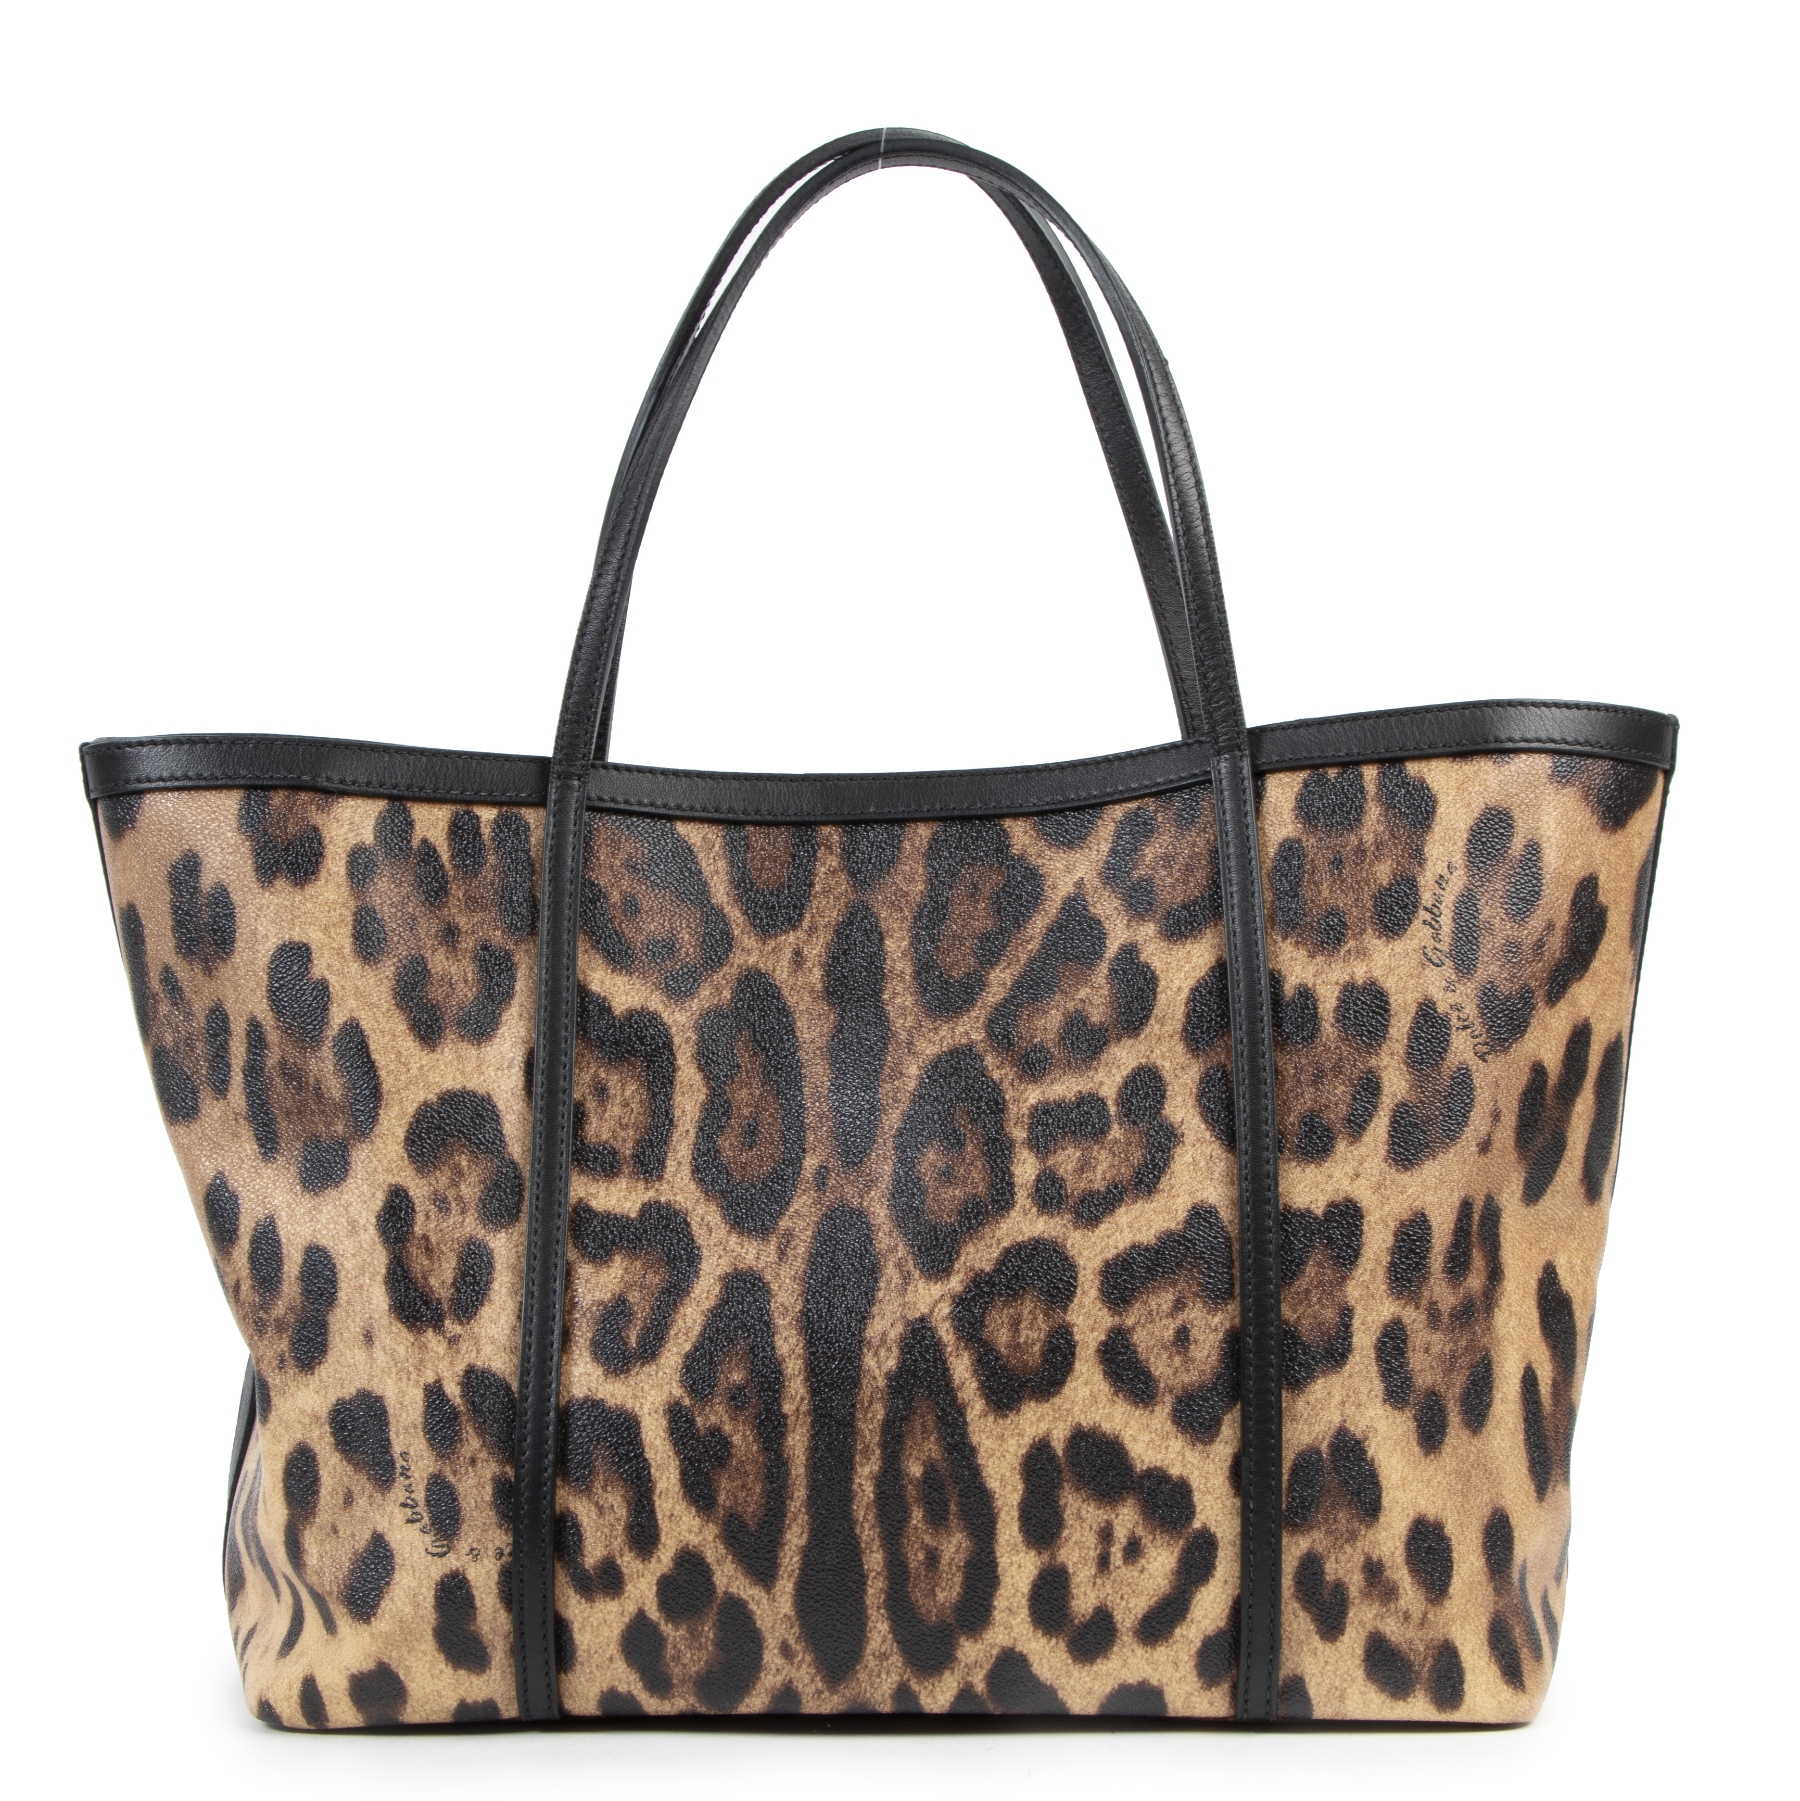 Authentic secondhand Dolce & Gabbana Leopard Tote Bag designer bags fashion luxury vintage webshop safe secure online shopping